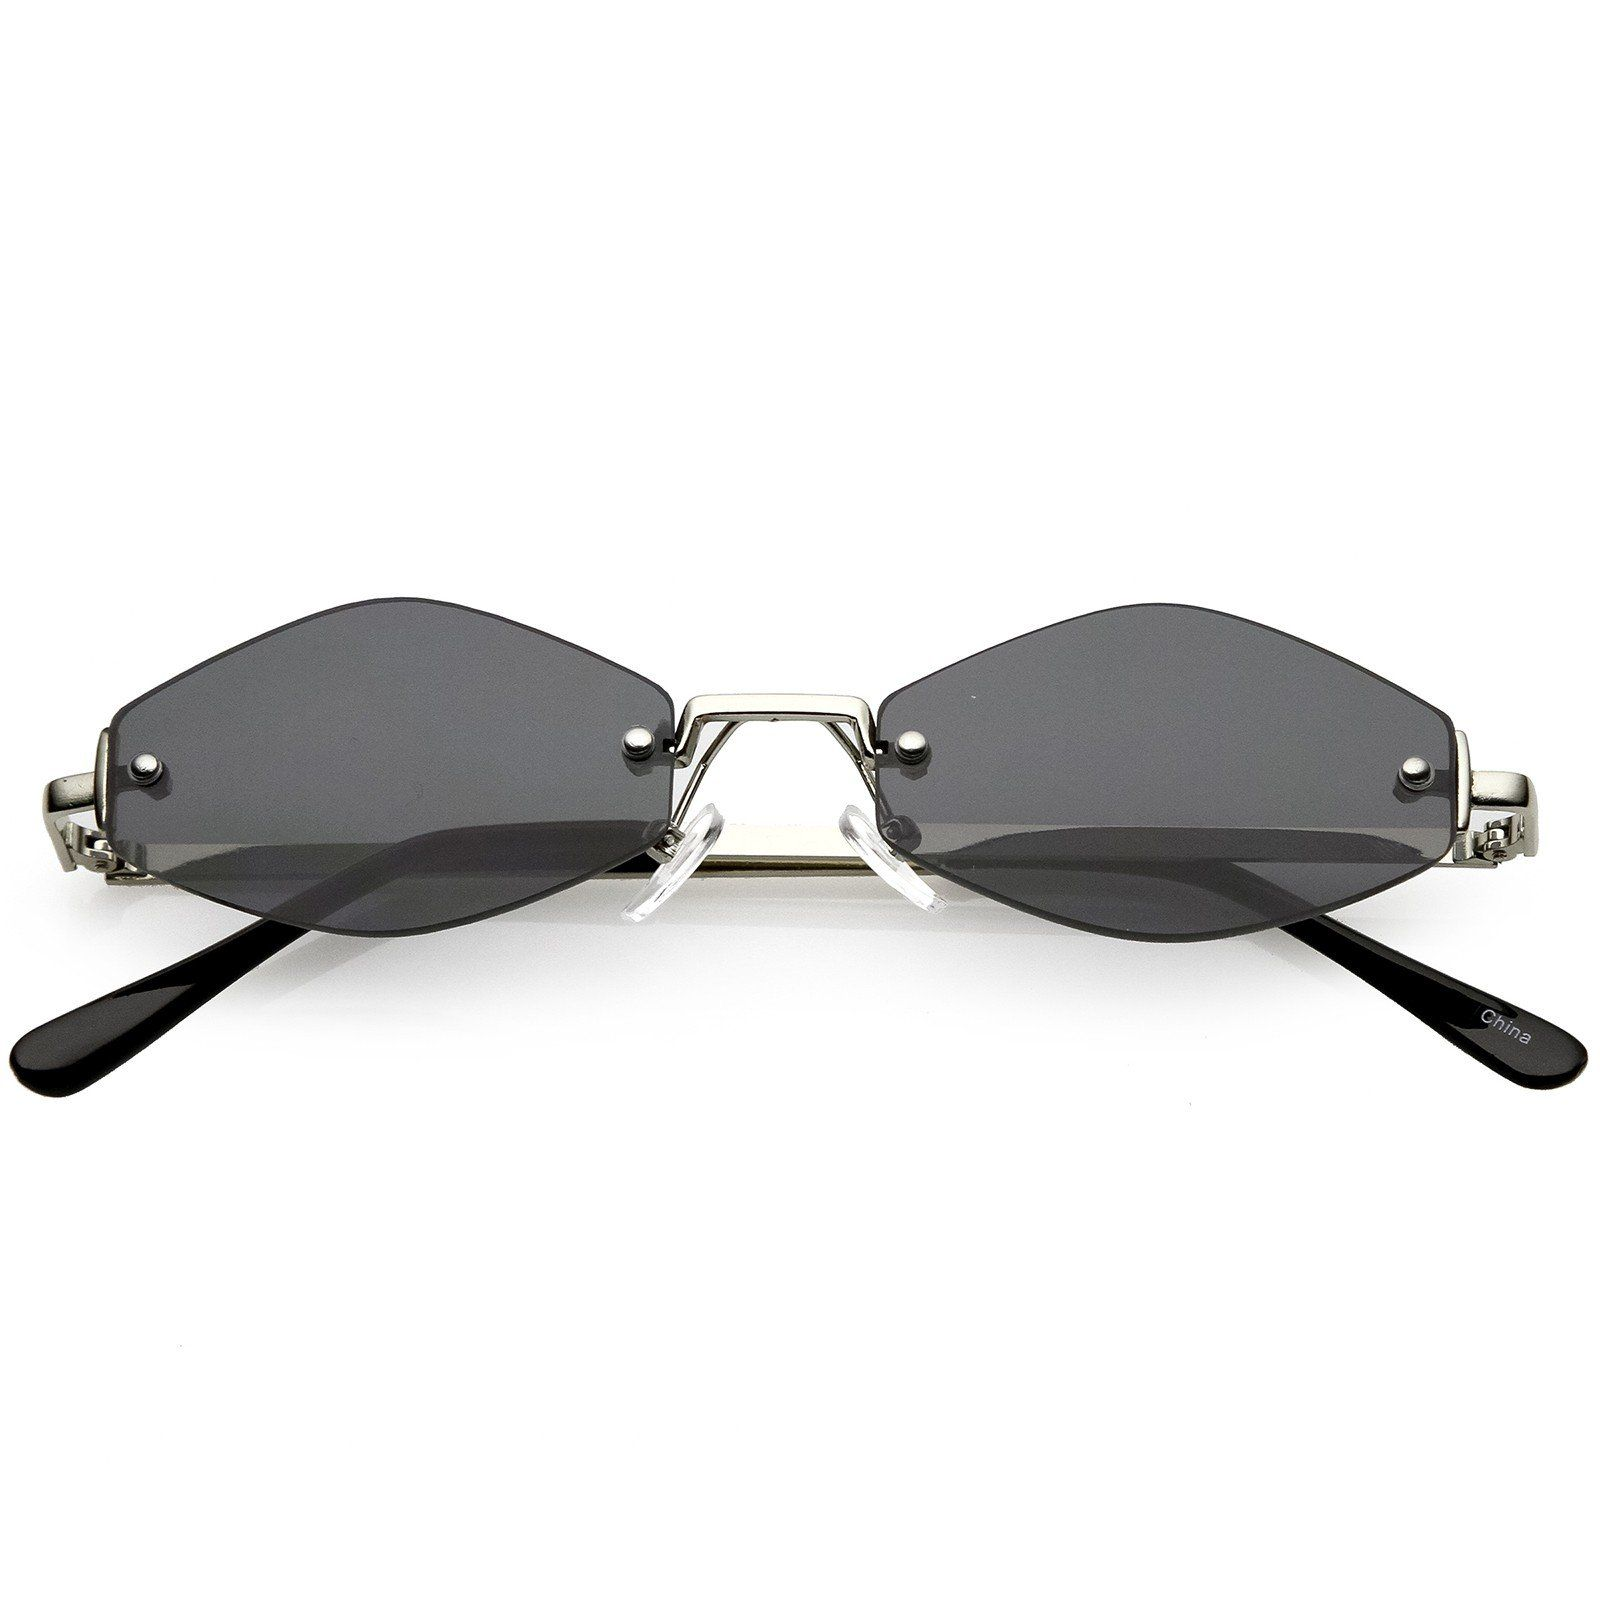 Extreme Small Geometric Rimless Sunglasses Neutral Colored